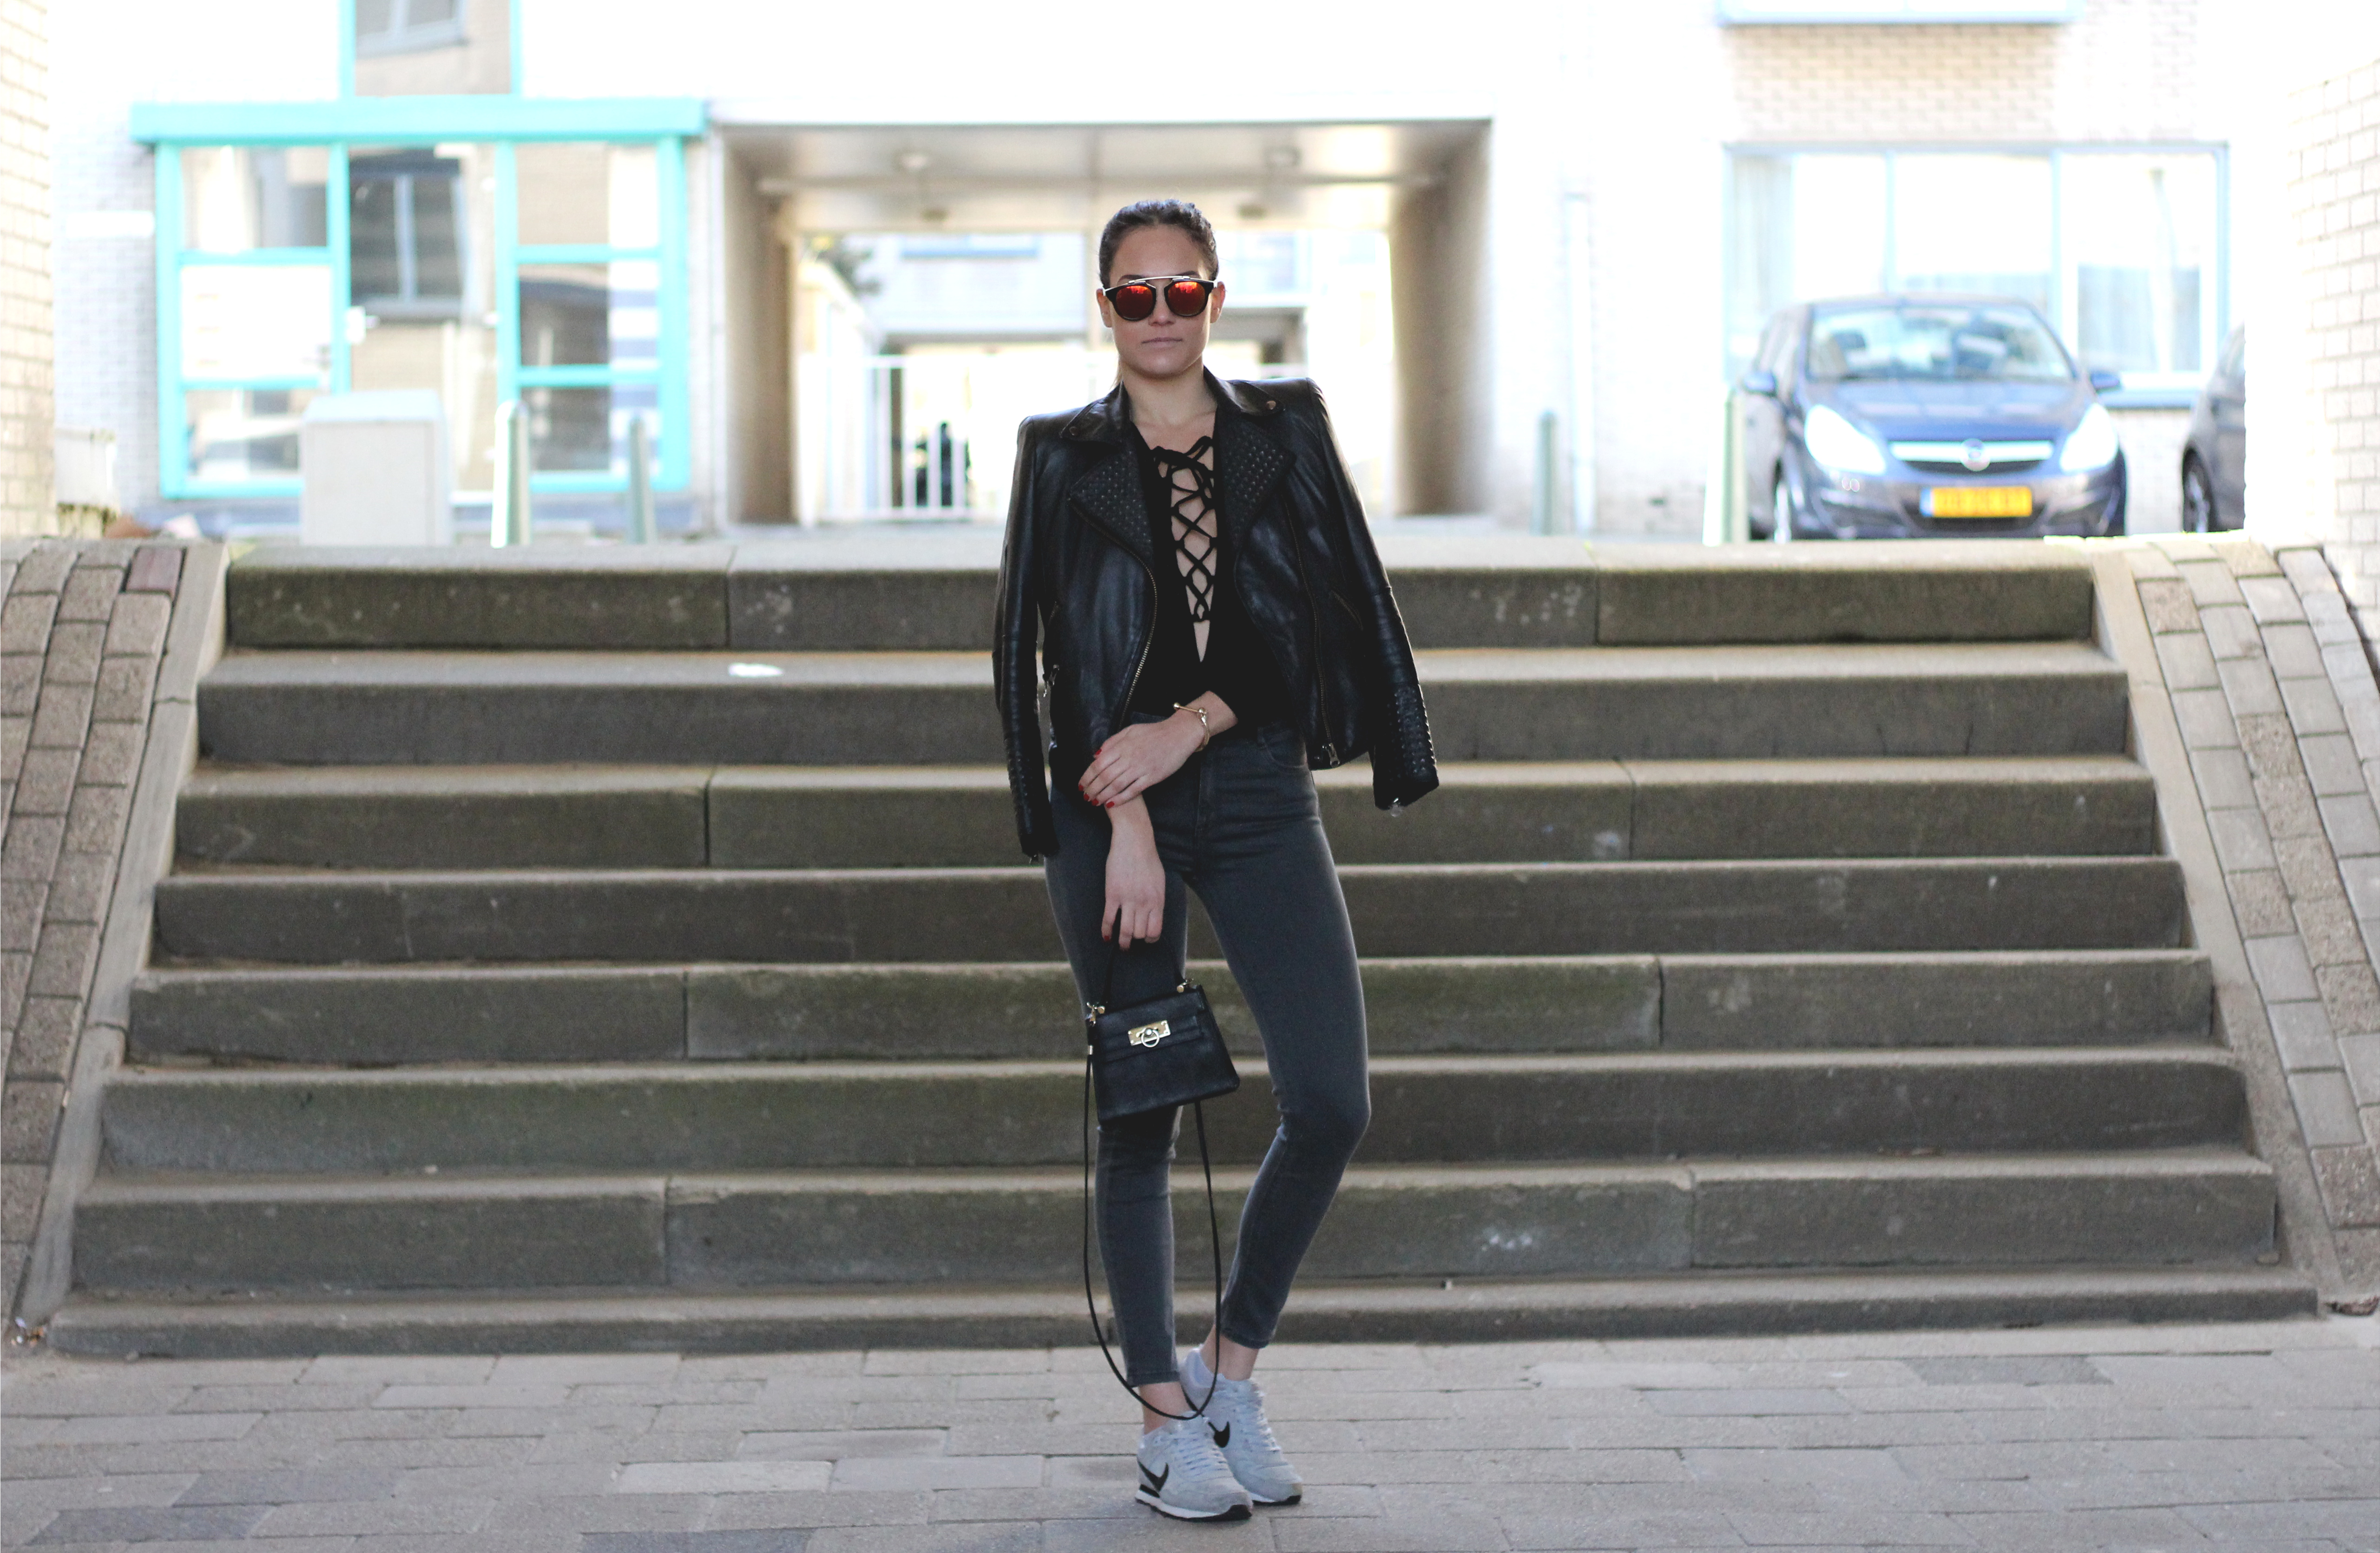 outfit fashion blog wholesalebuying nike md runner dressgal sunglasses zara leather jacket review bulgarian fashion blogger quite a looker www.quitealooker.com български моден блог